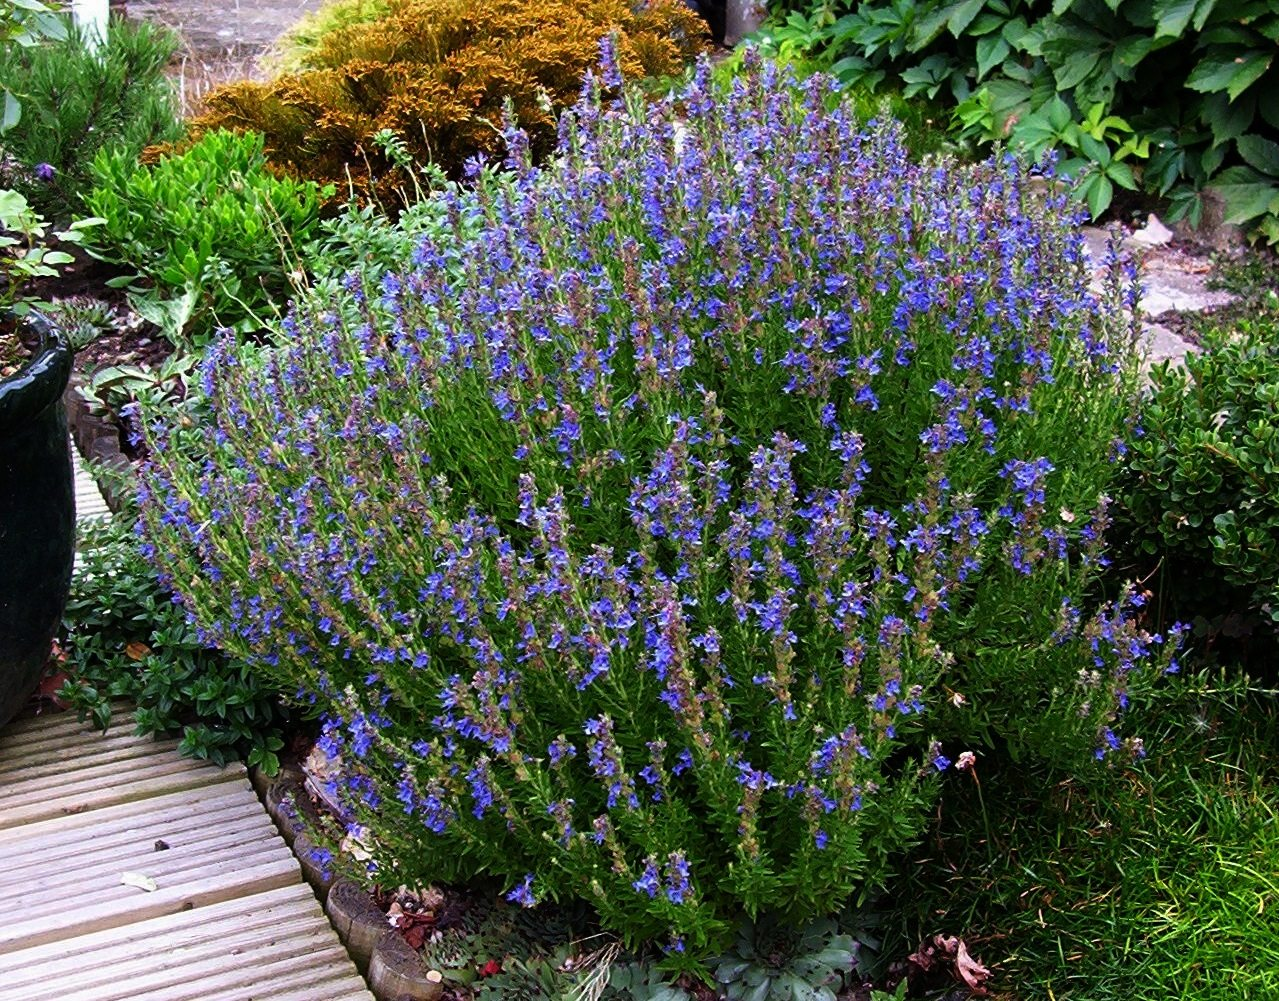 How To Grow Hyssop Plants